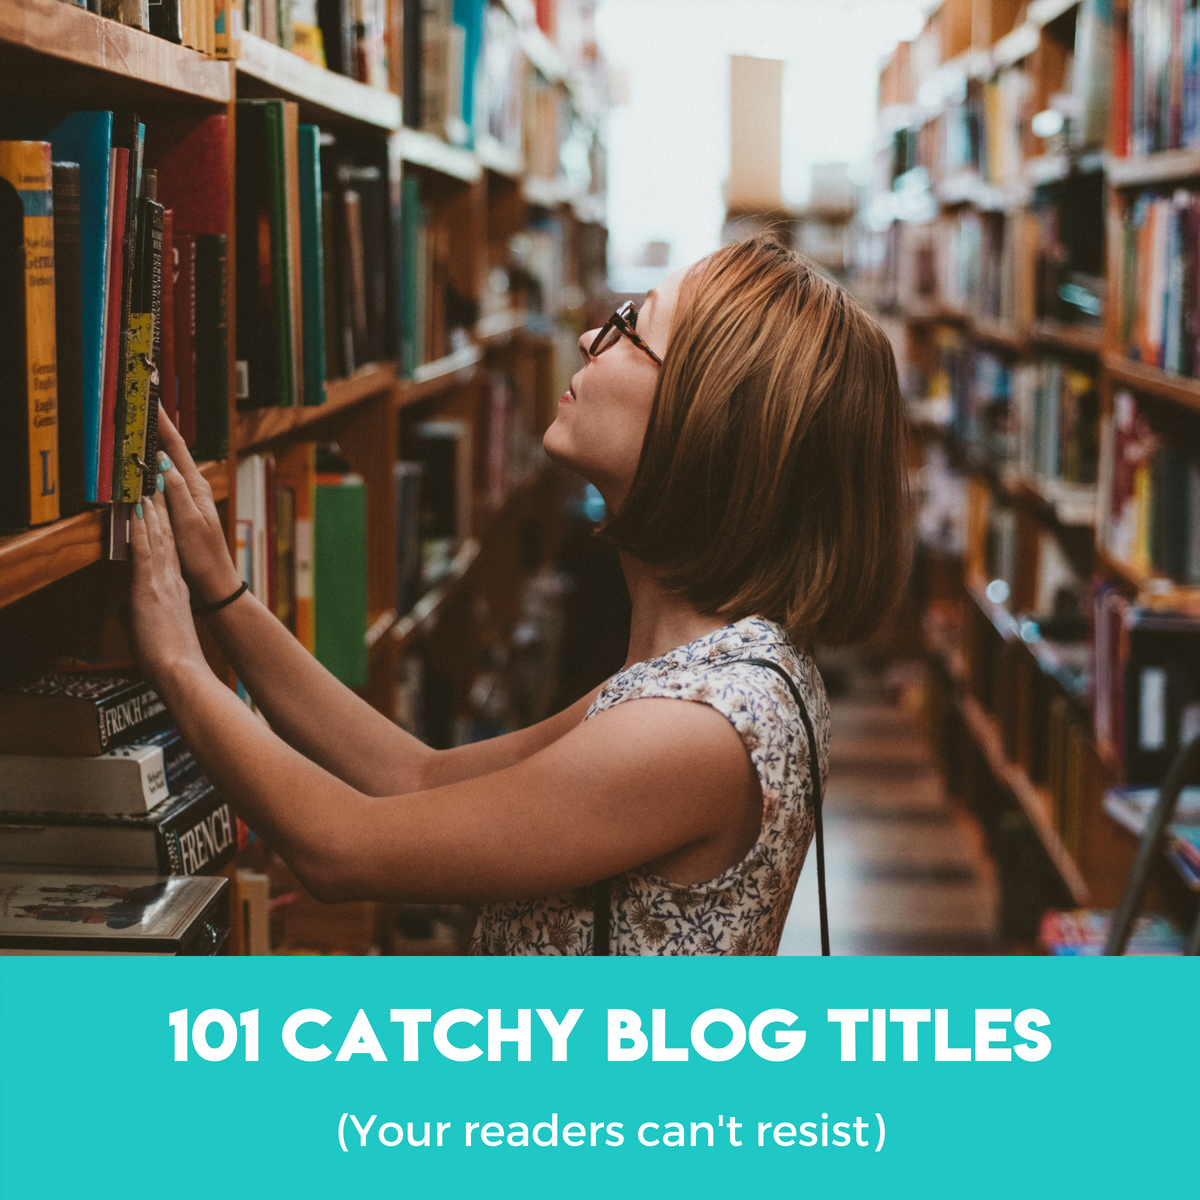 101 Catchy Blog Titles